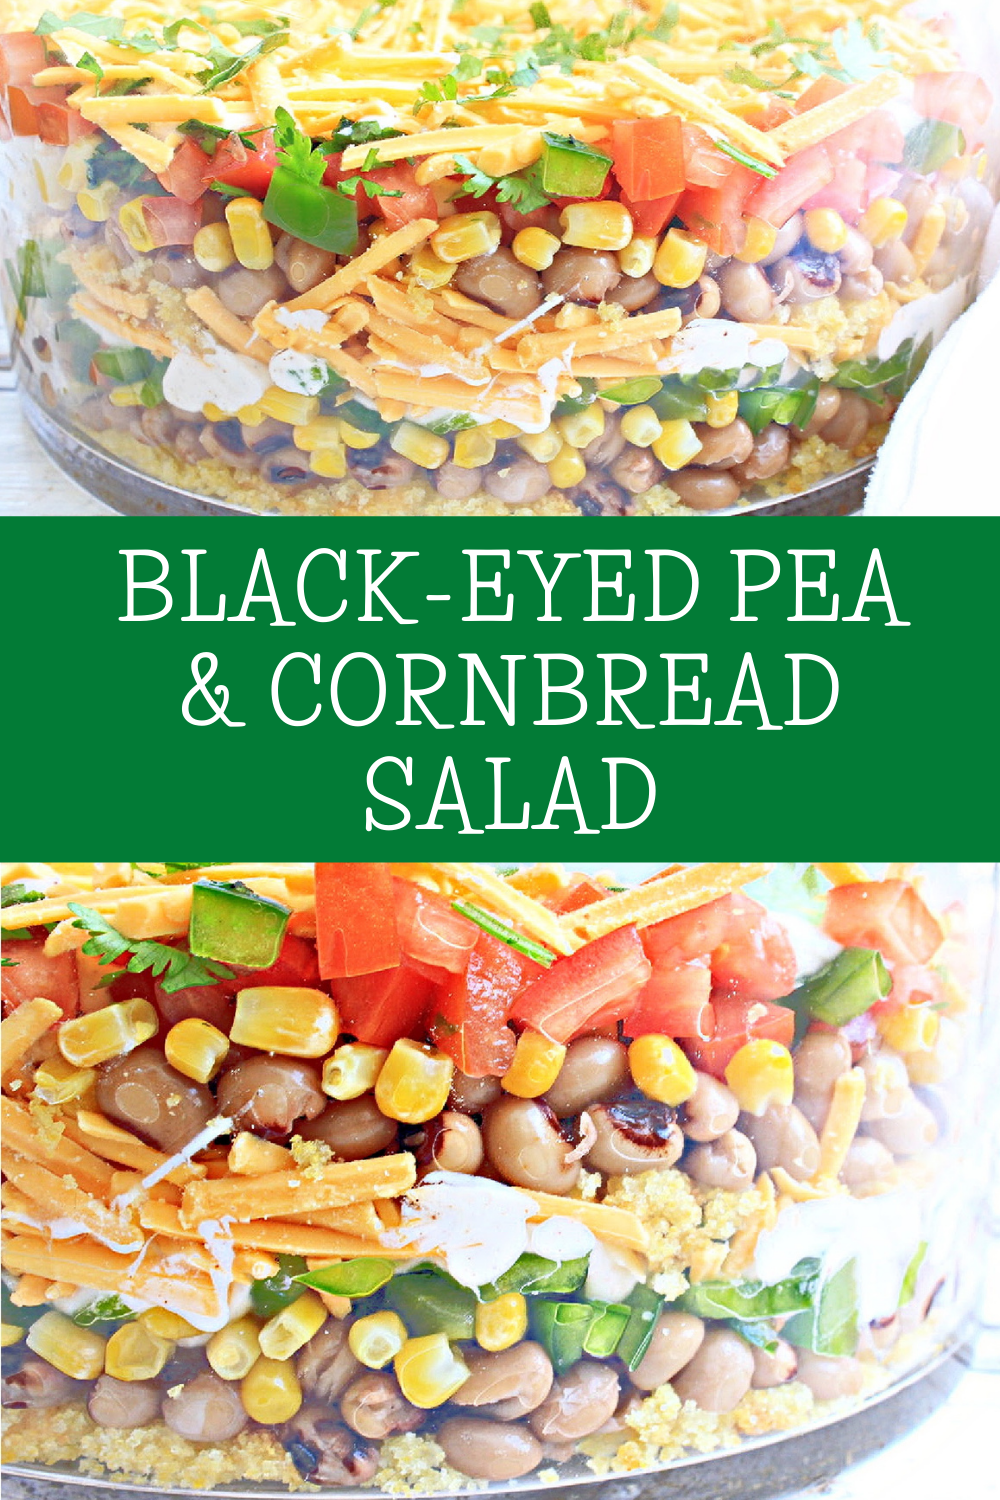 Black-Eyed Pea & Cornbread Salad ~ This Southern-style layered salad is easy to make with plant-based ingredients and great for summertime picnics and potlucks! via @thiswifecooks